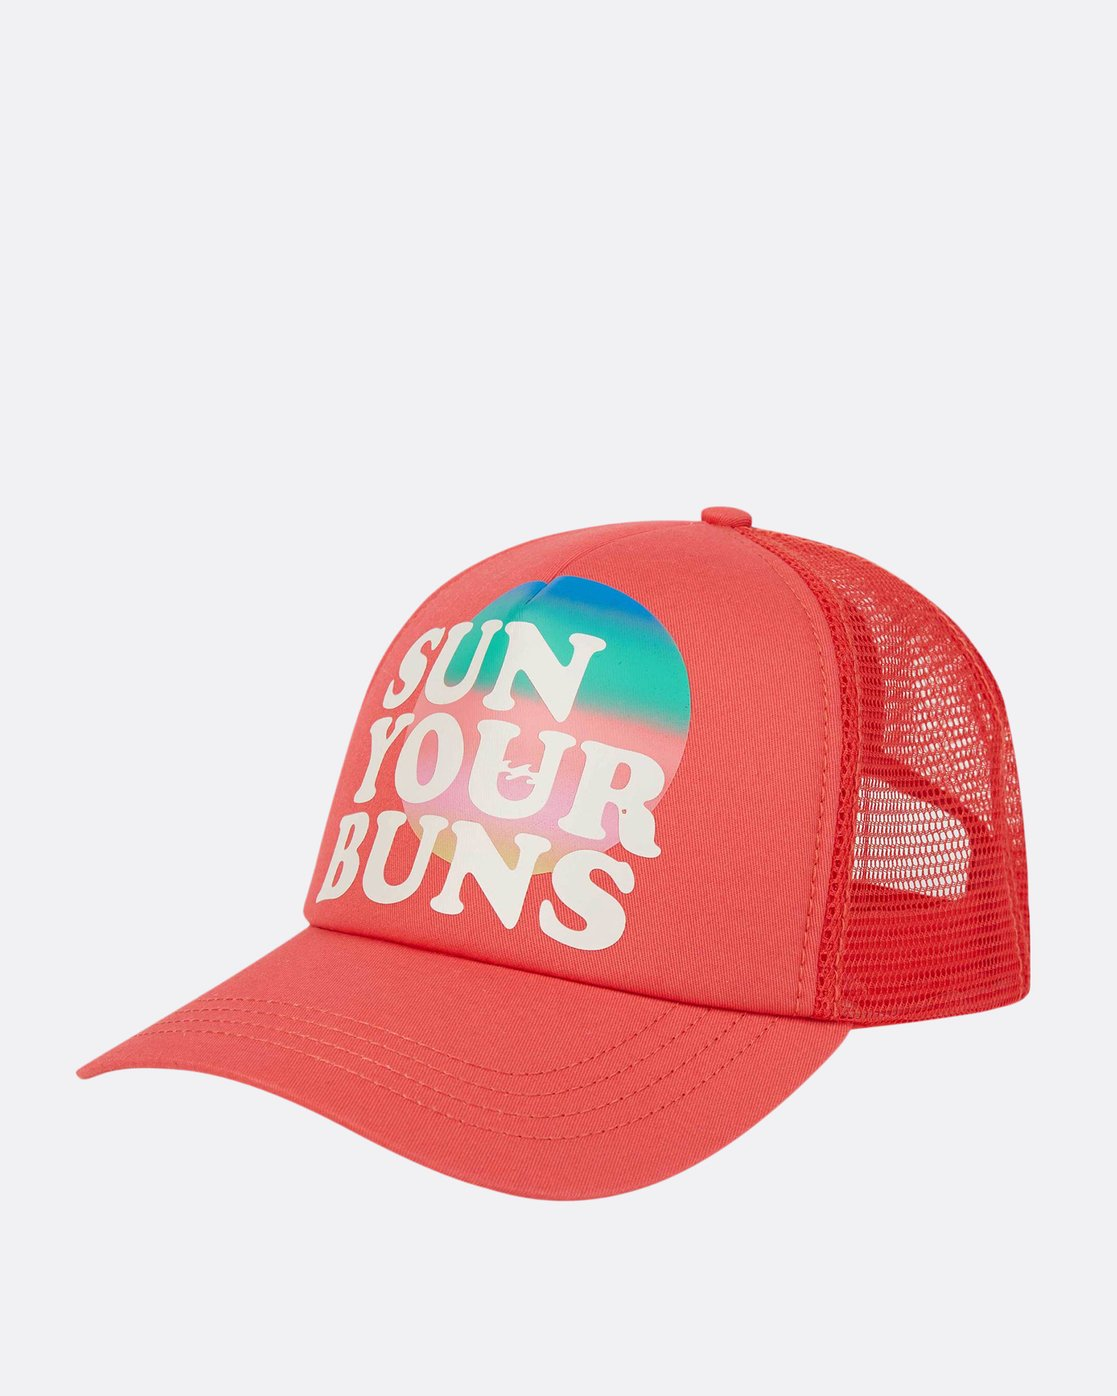 79fd7881eab 0 Sun Your Bunz Trucker Hat JAHWPBSU Billabong